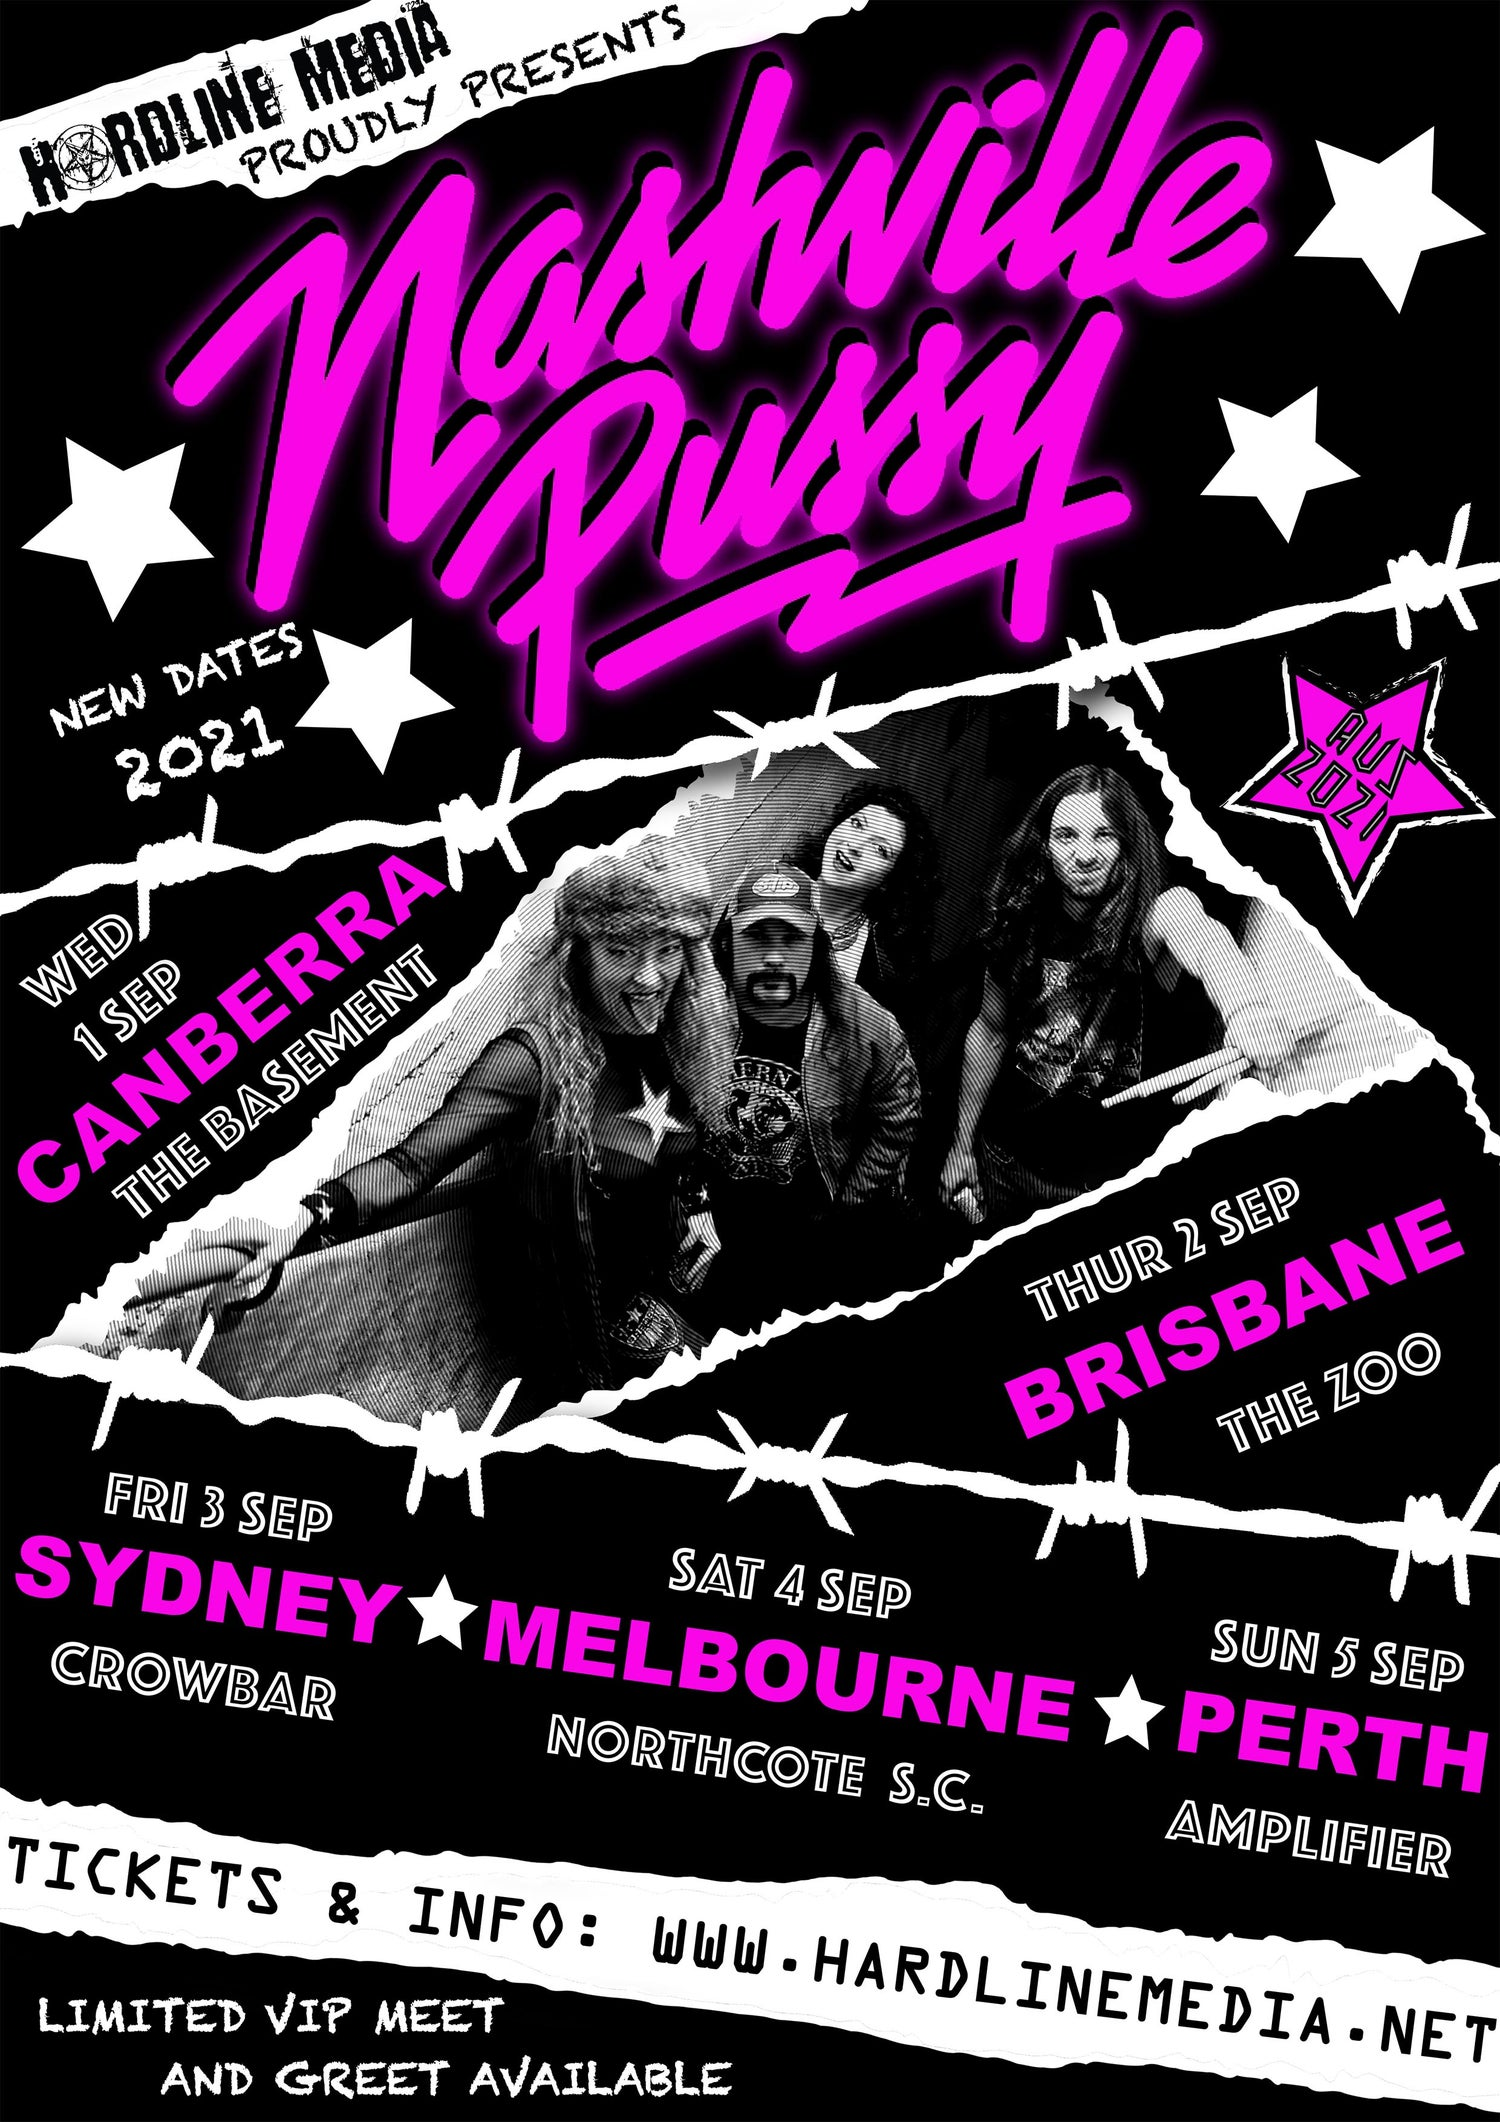 Image of VIP TICKET - NASHVILLE PUSSY - MELBOURNE, NORTHCOTE S.C. - SAT 4 SEP 2021